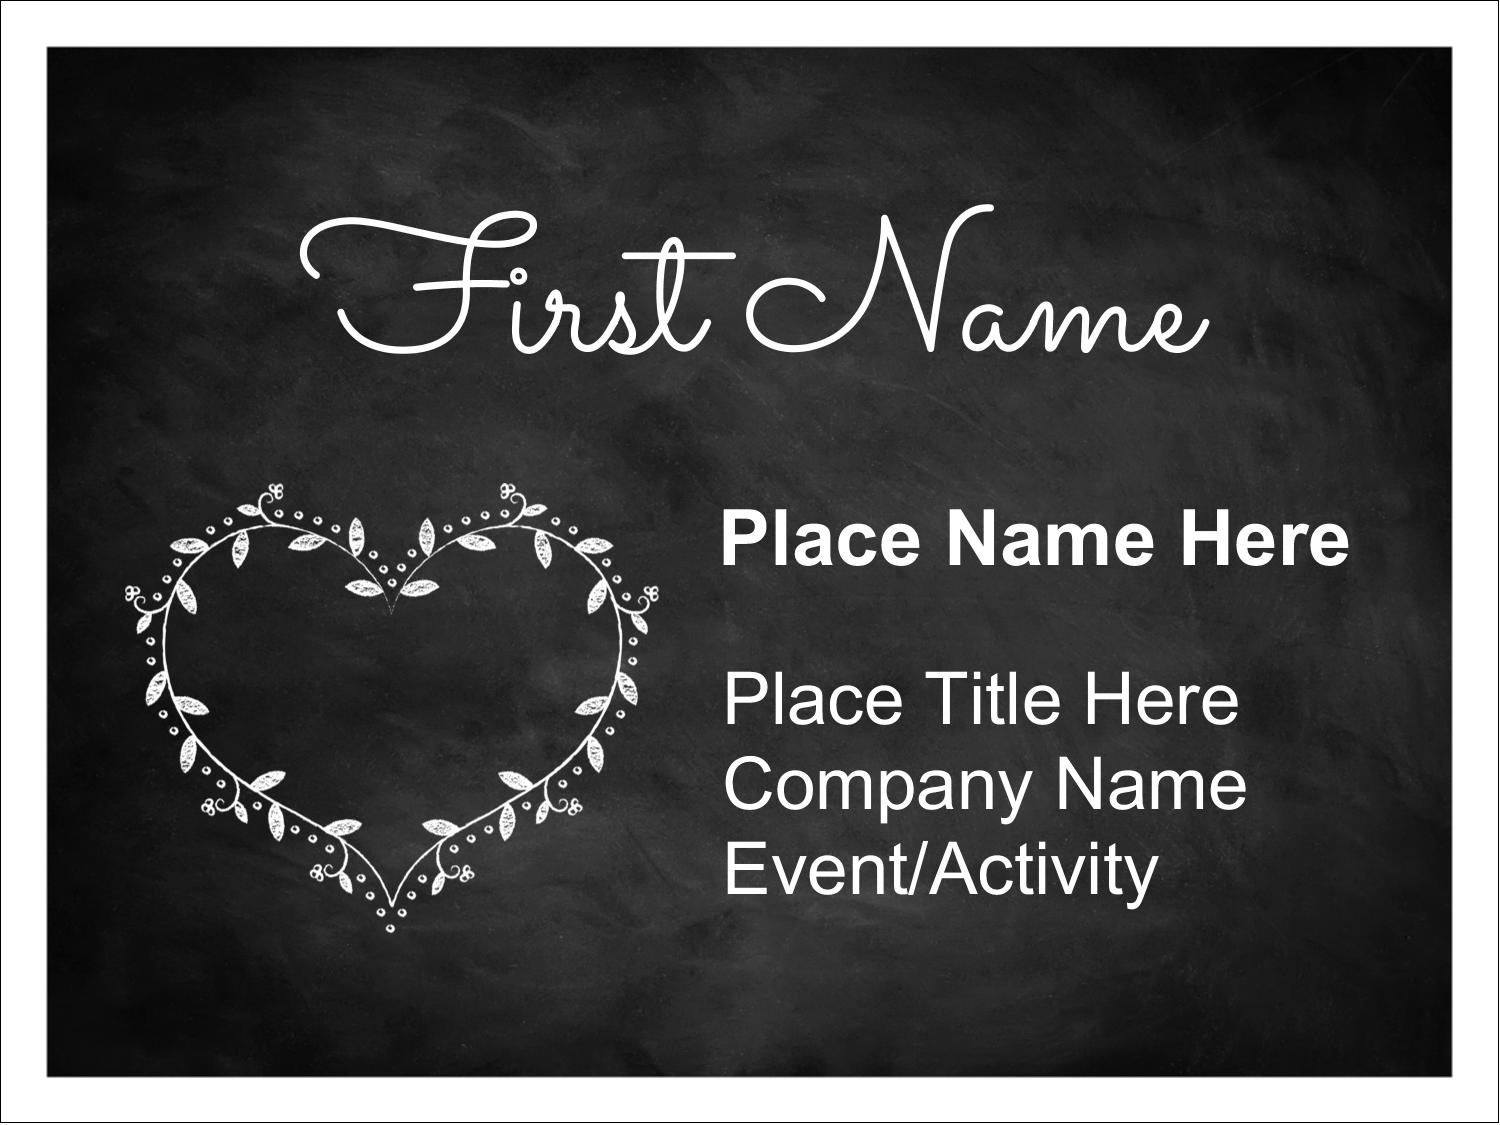 Avery Name Tag Template 5393